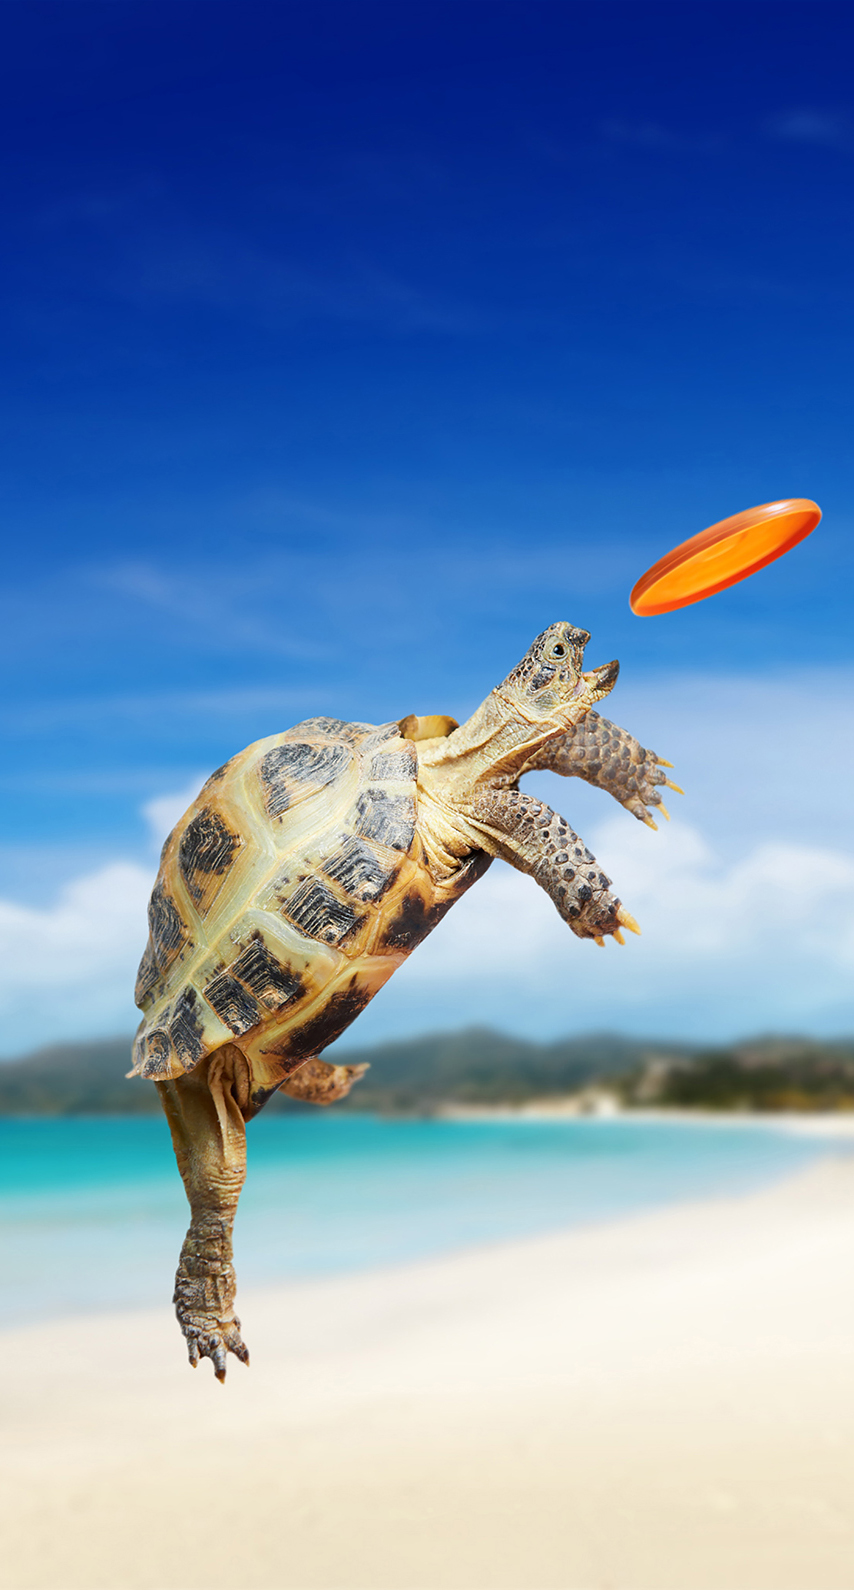 no person, one, fair weather, outdoors, action, leisure, hurry, reptile, turtle